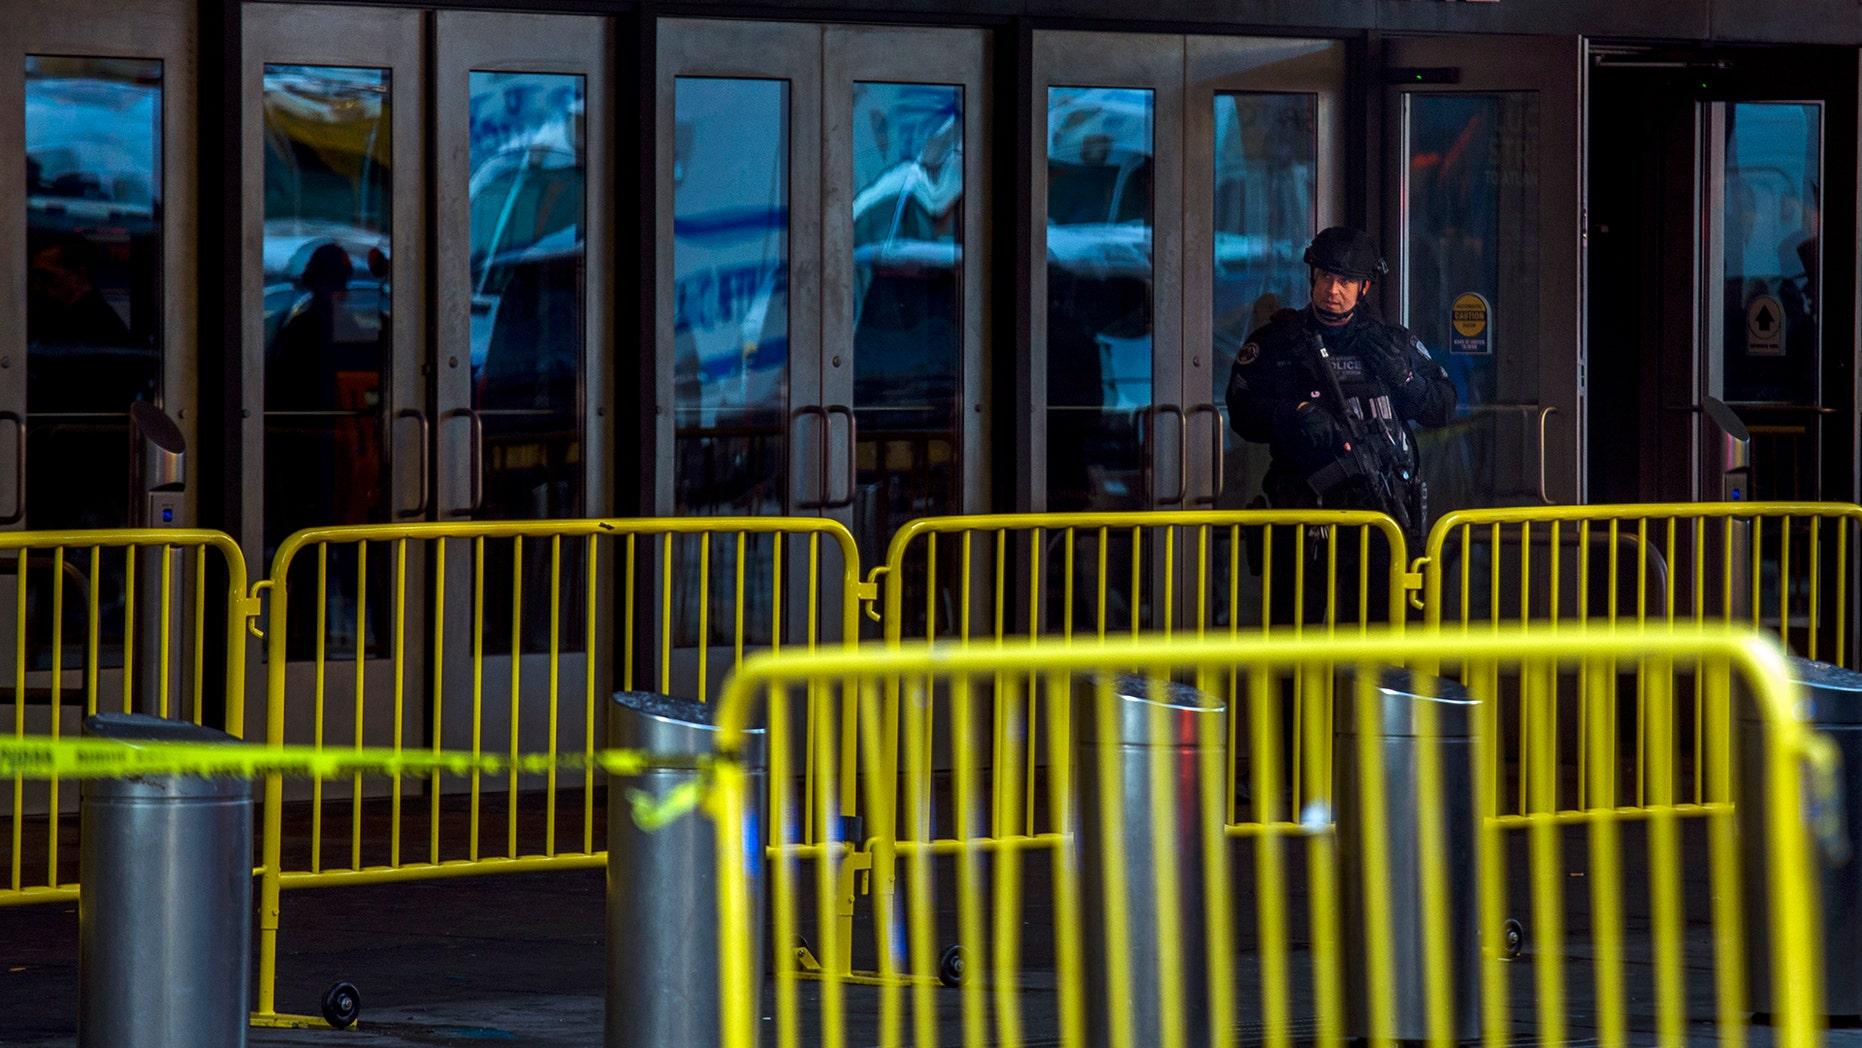 A police officer stands guard outside the Port Authority Bus Terminal in New York City, Dec. 11, 2017. (Associated Press)